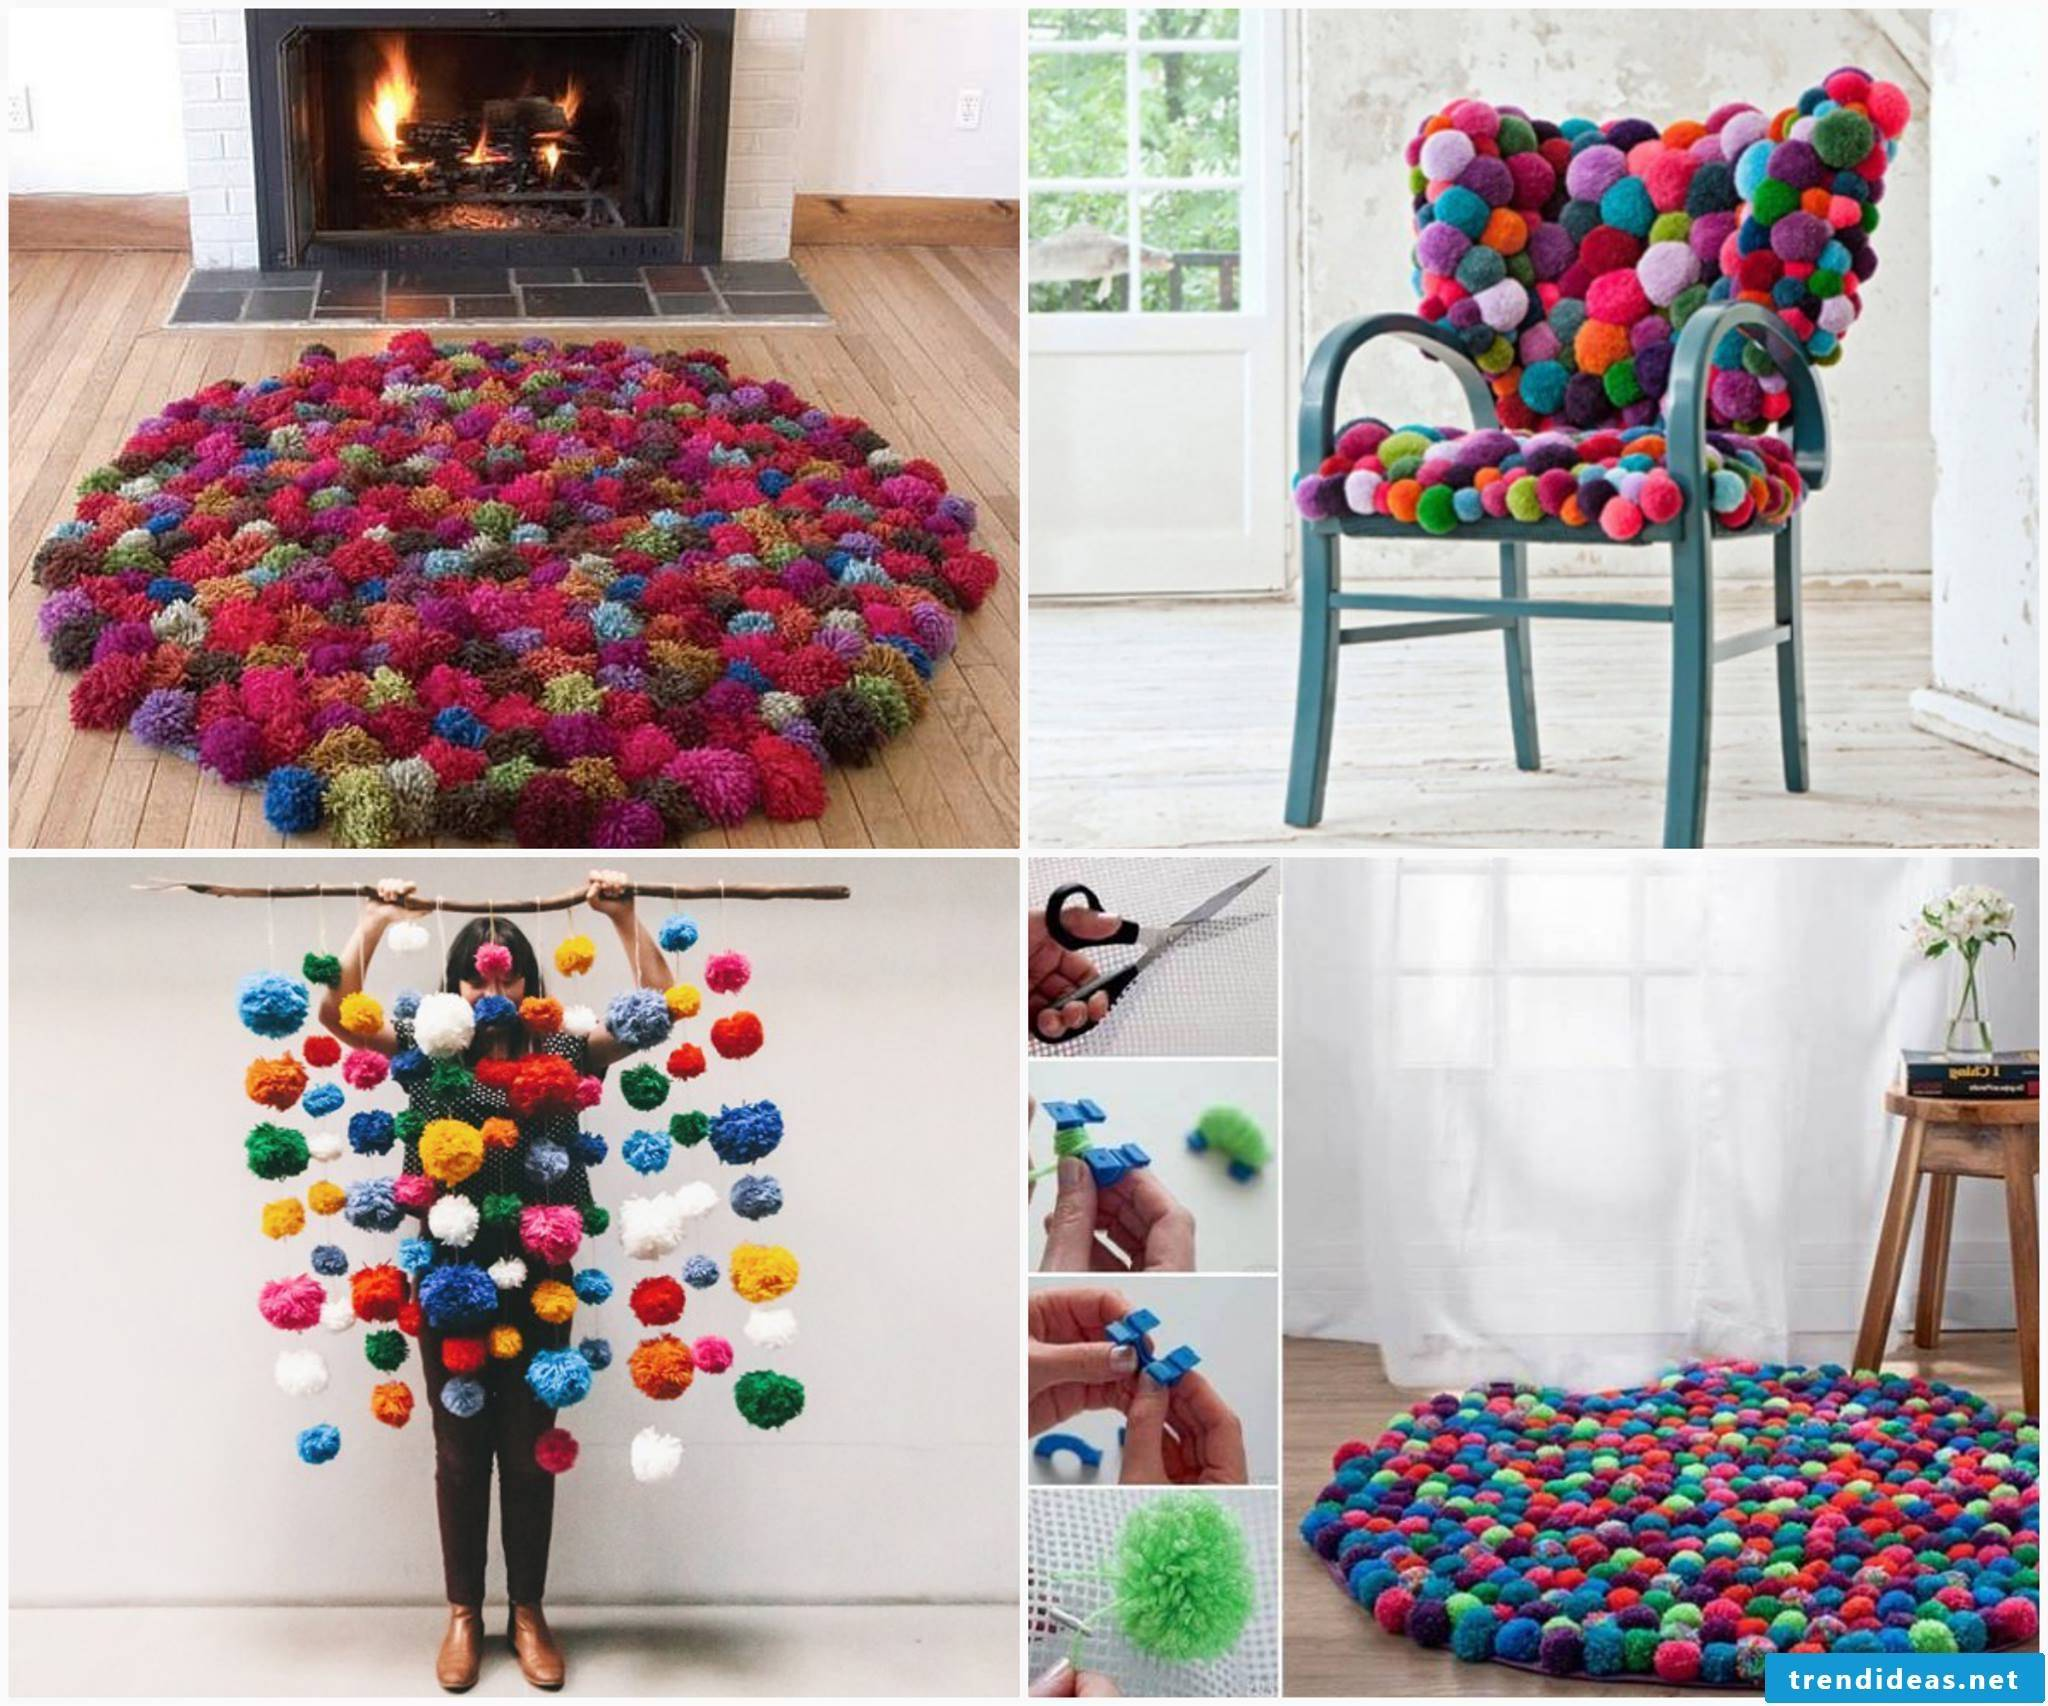 Design your home the coolest things from pompoms